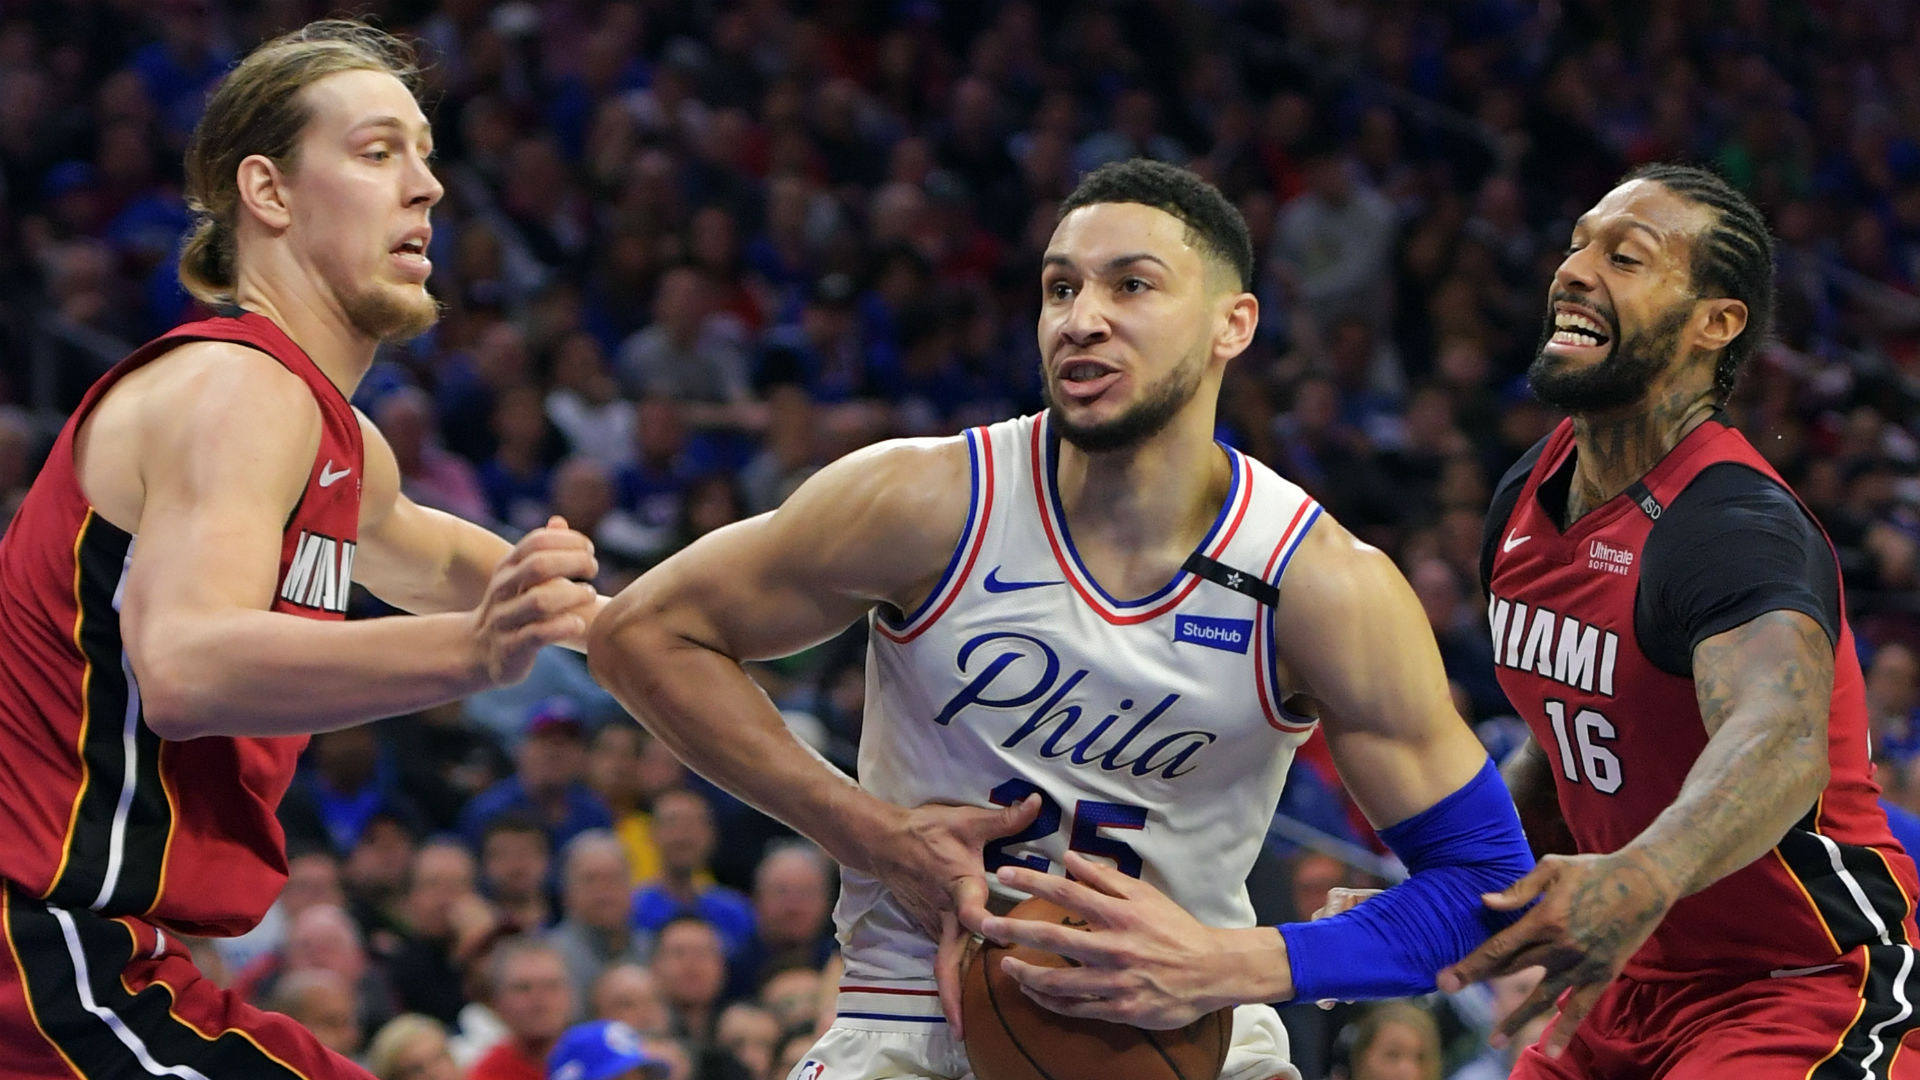 Philadelphia 76ers: 3 takeaways from playoff series win over Miami Heat